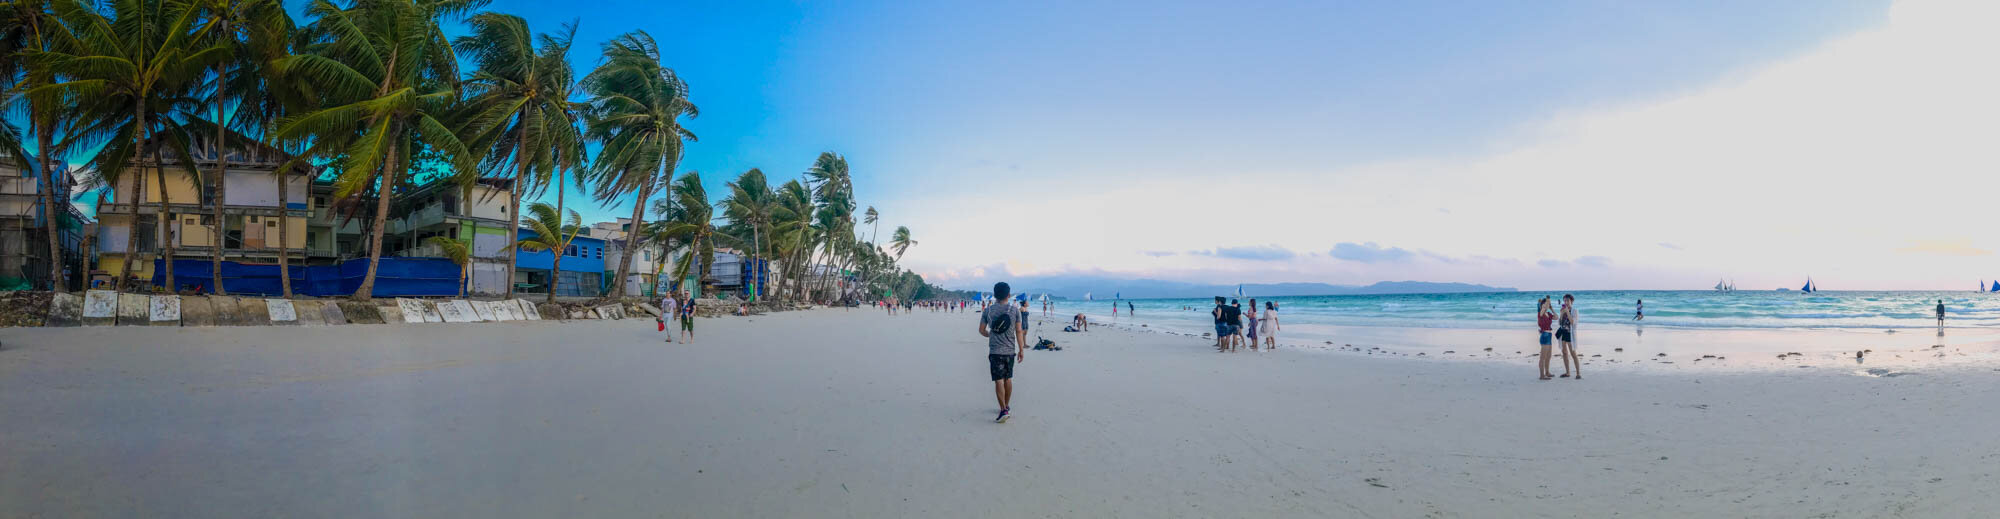 2019, White Beach. While the structures on the left can be a bit of an eyesore, it's important to note that even with construction and debris in the vicinity, the area is still clean and the beachfront is pristine.